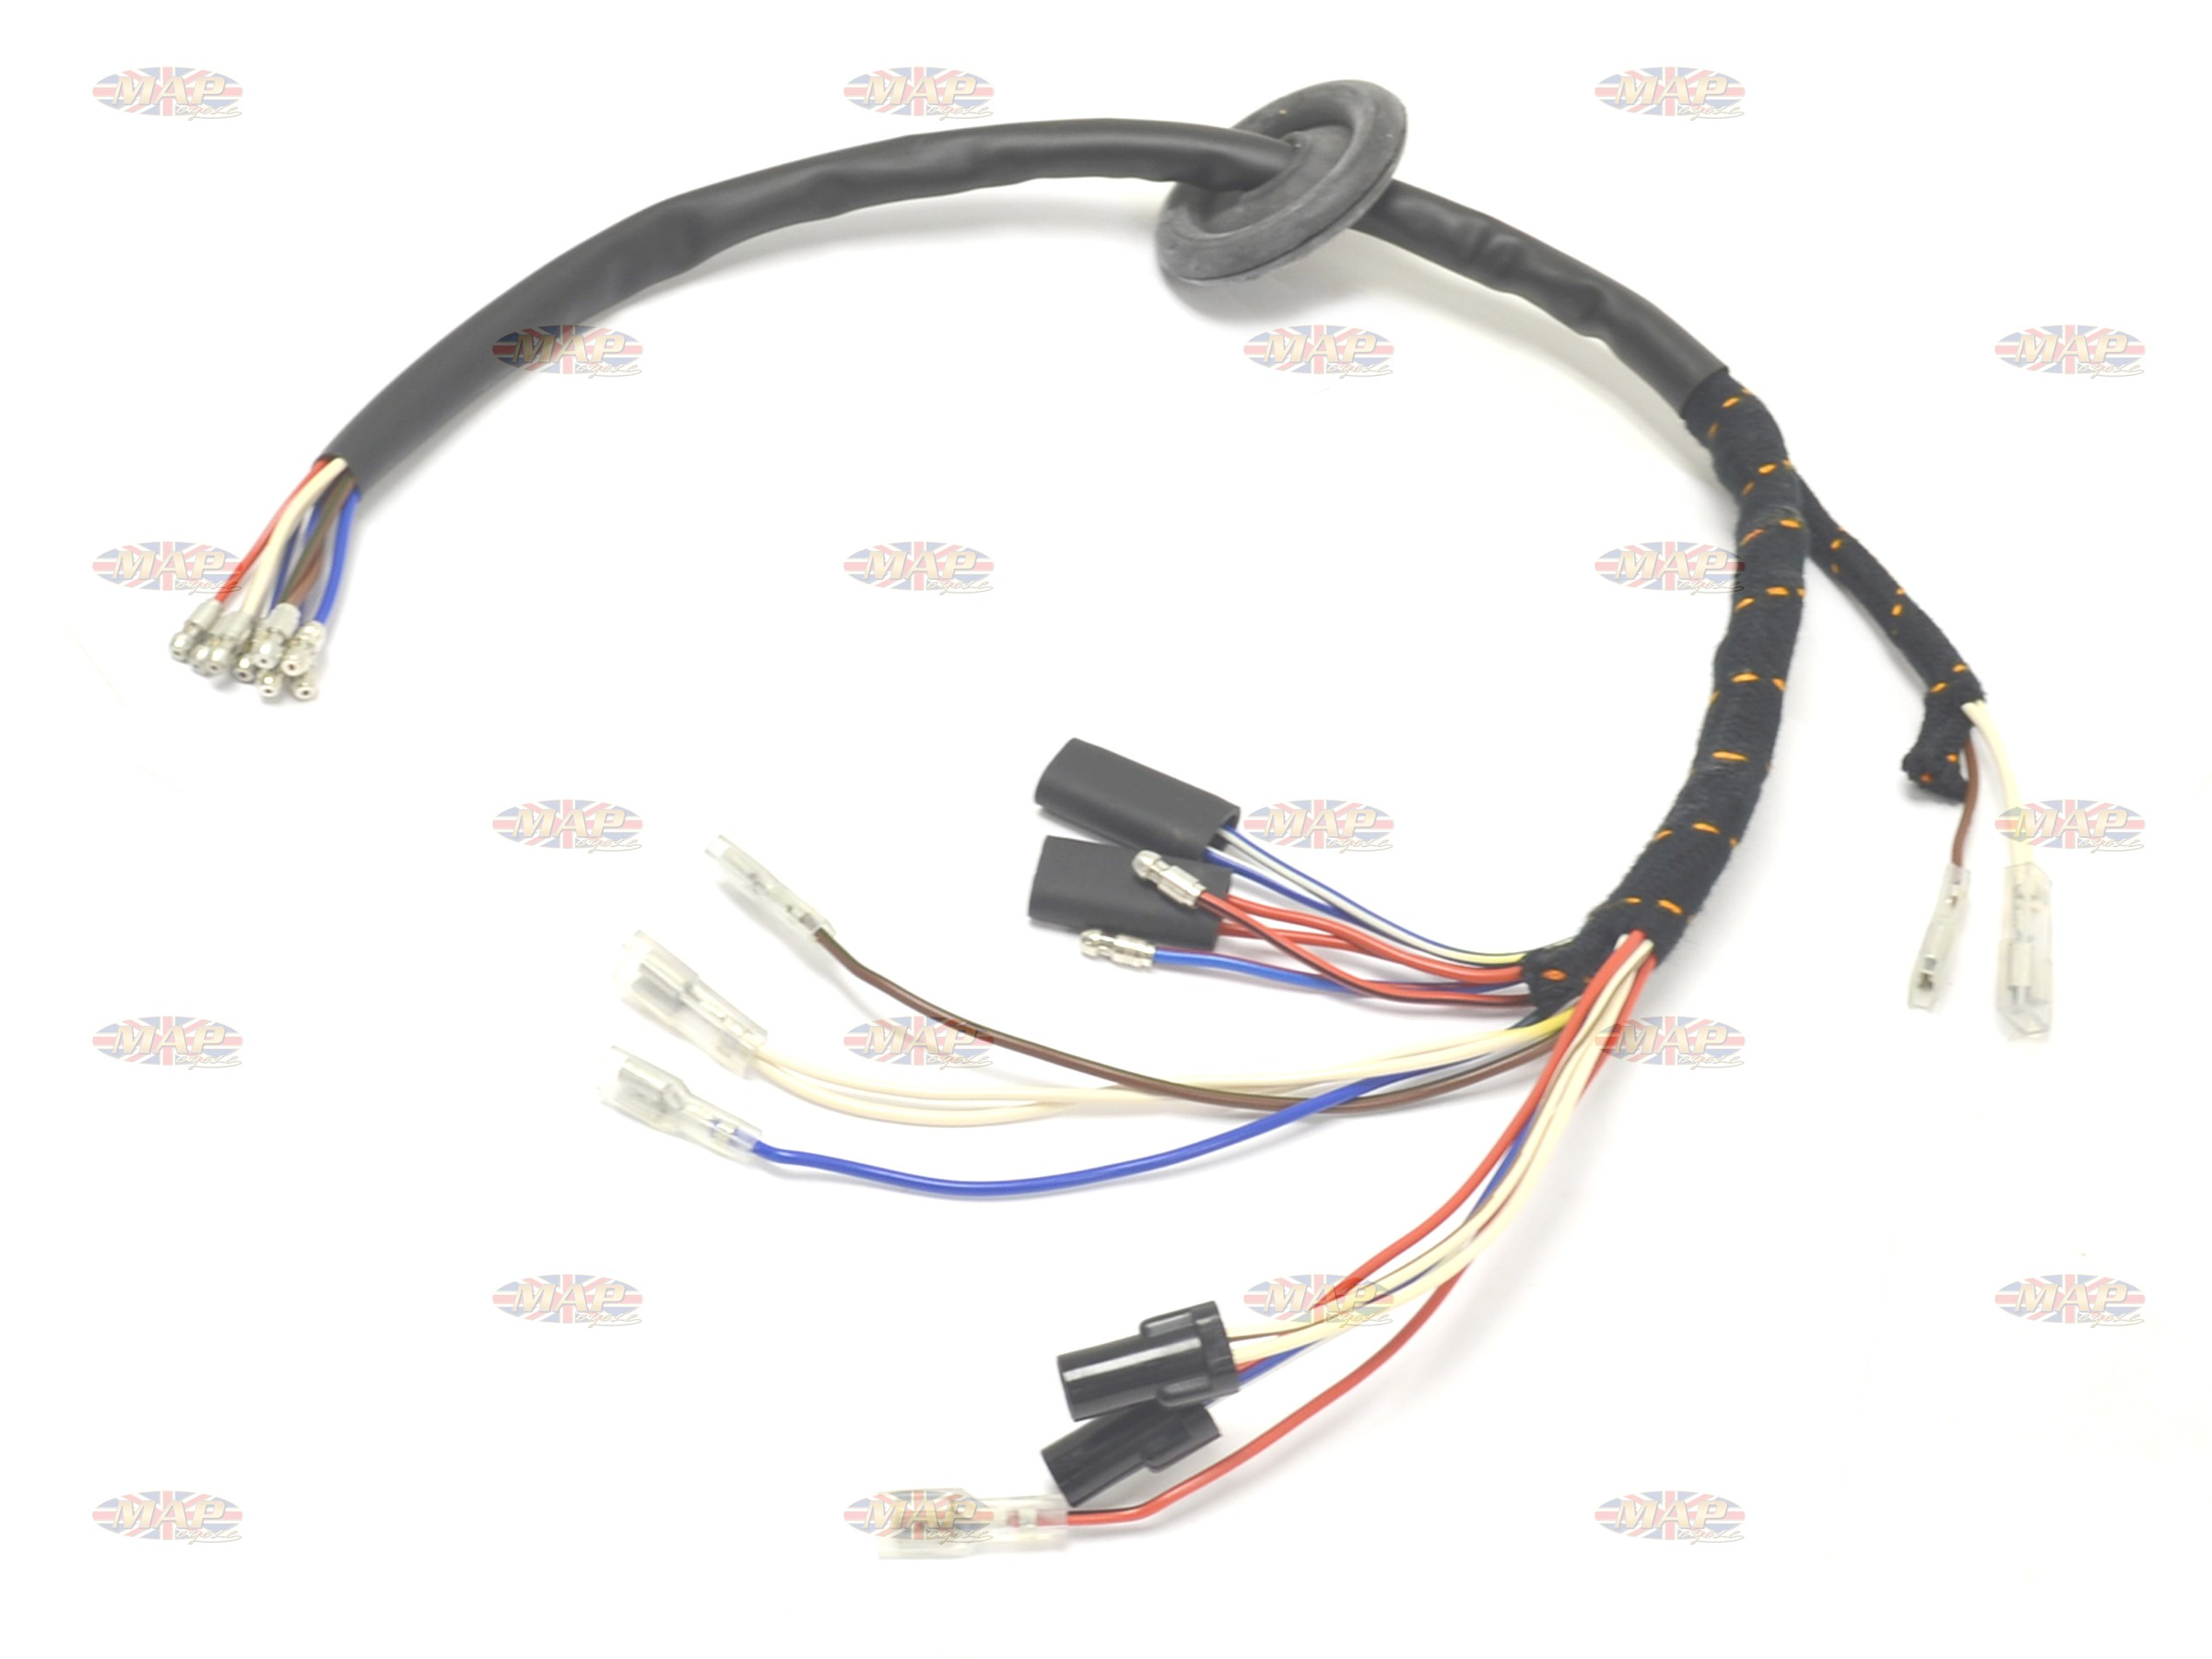 Wiring Harness For Power Wheels Jeep Schematic Diagrams Hurricane Diagram Product U2022 2004 Mazda 6 Window